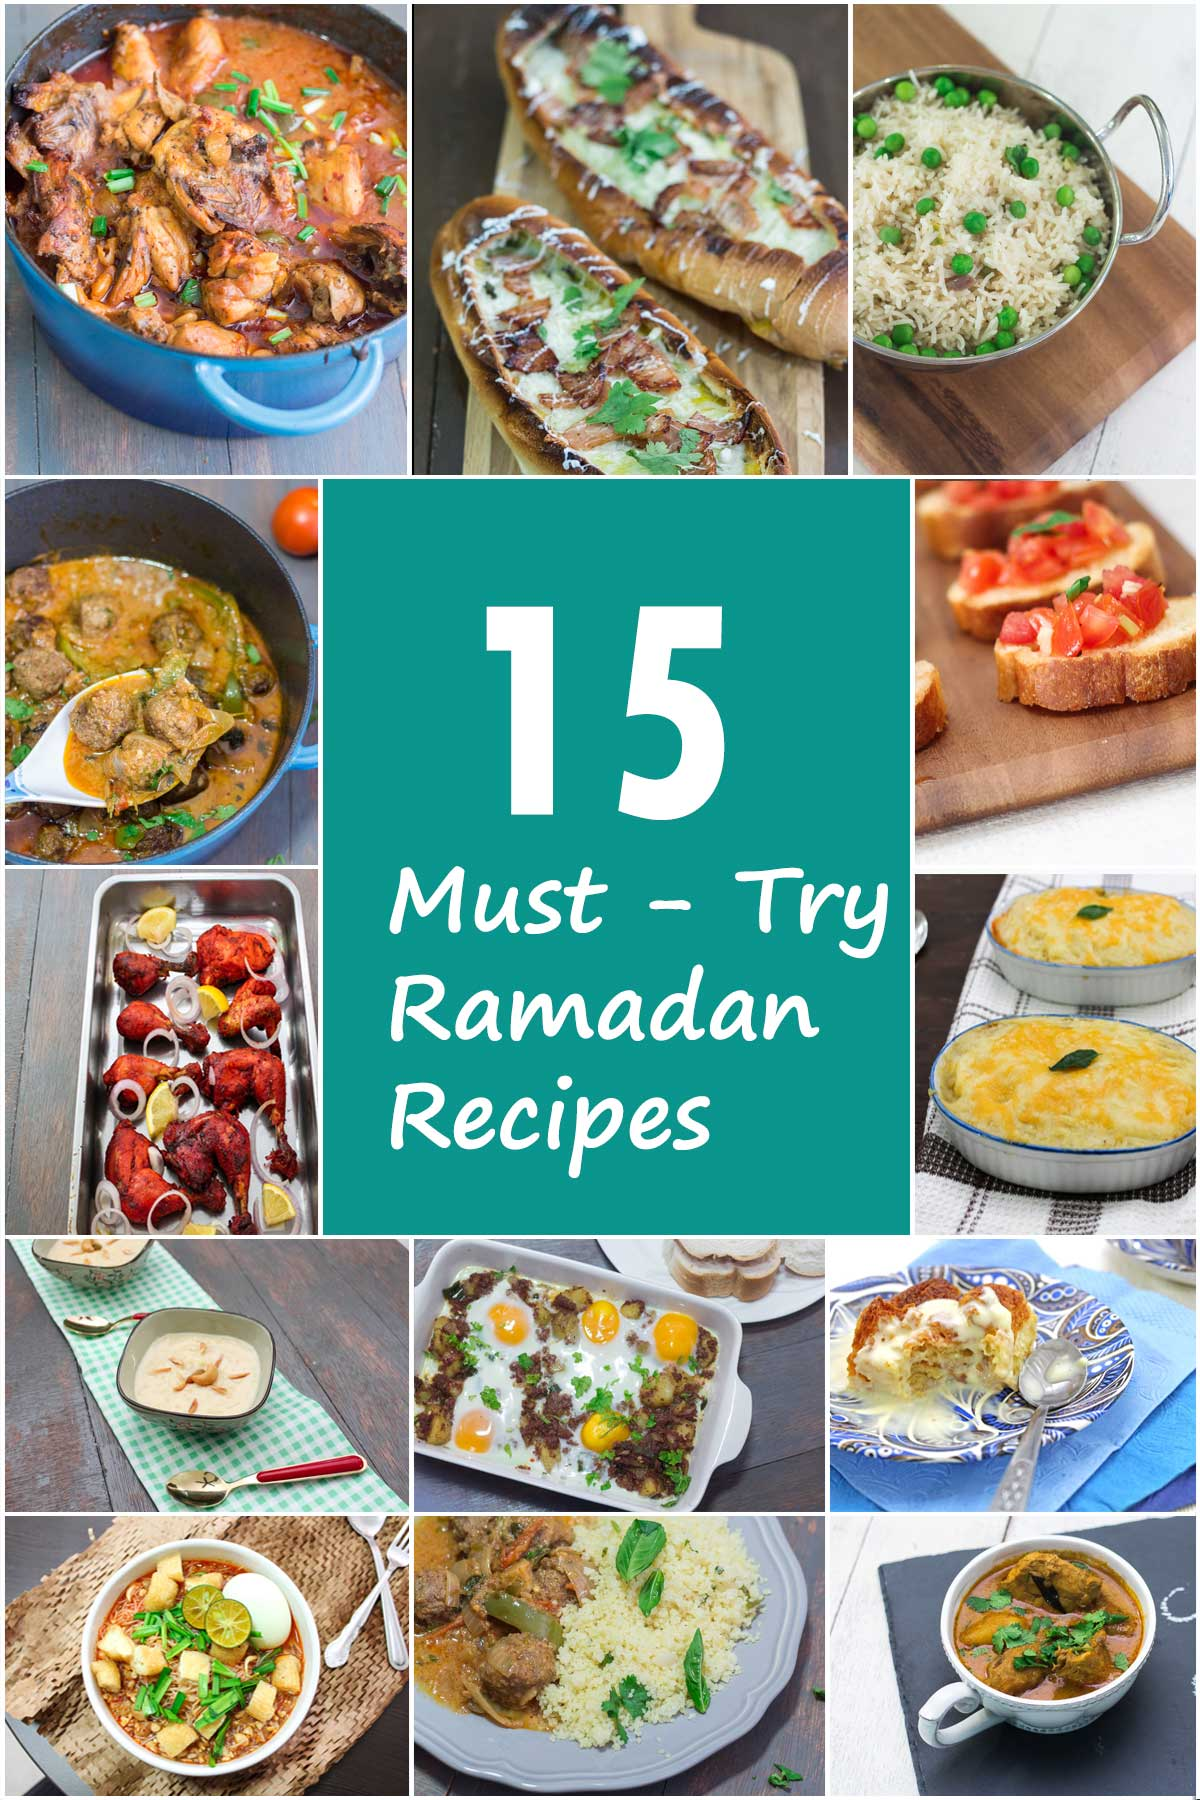 15 Must Have Baby Items Essential For Life With A Newborn: 15 Must Try Ramadan Recipes